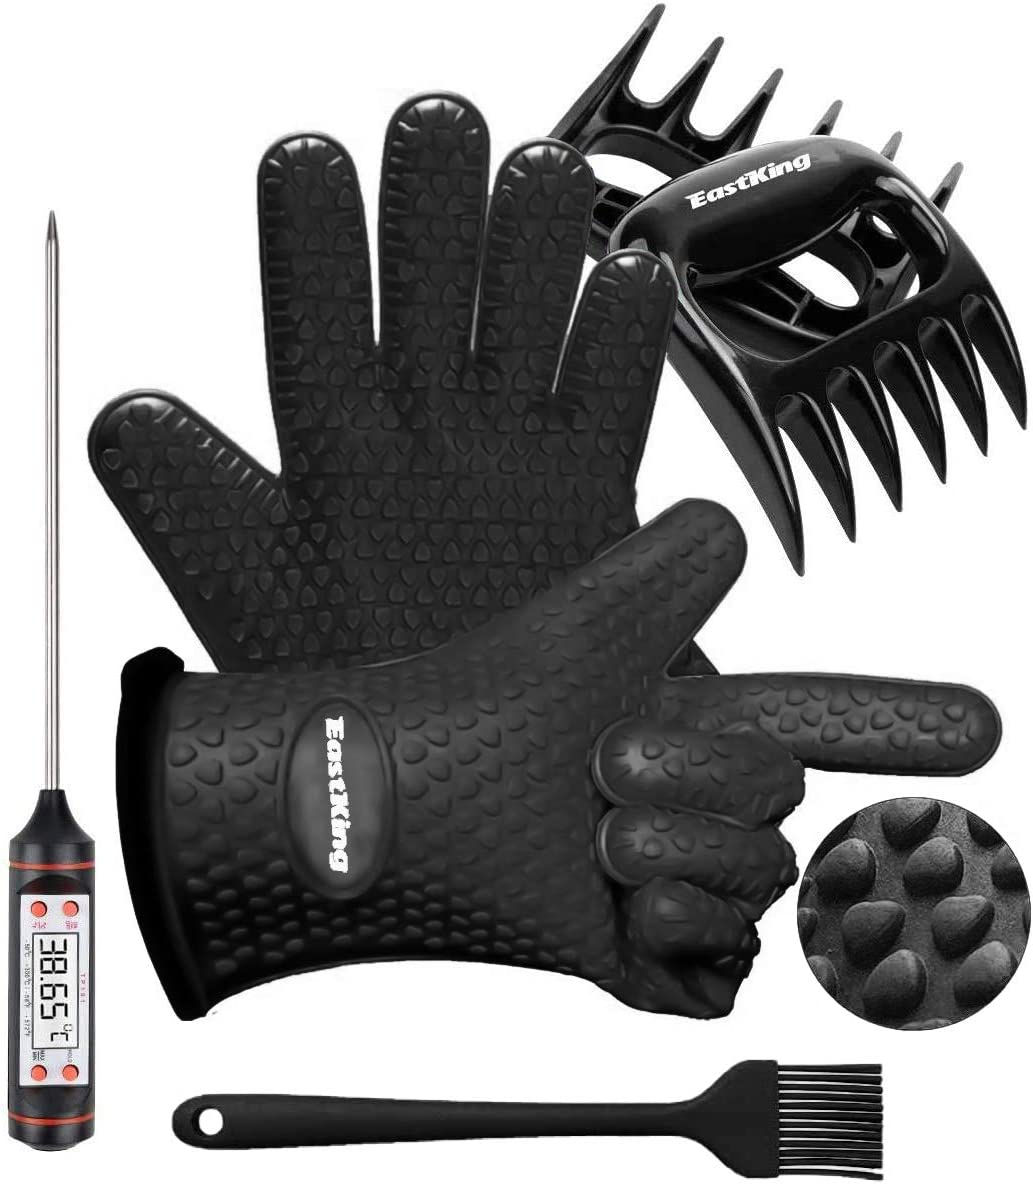 EastKing BBQ Gloves/BBQ Claws/Meat Thermometer and Silicone Brush Superior Value Premium Set (4pcs Set) - Heat Resistant/Non-Slip/Safe/Cooking/Grilling Silicone Gloves for Indoor & Outdoor (Black)